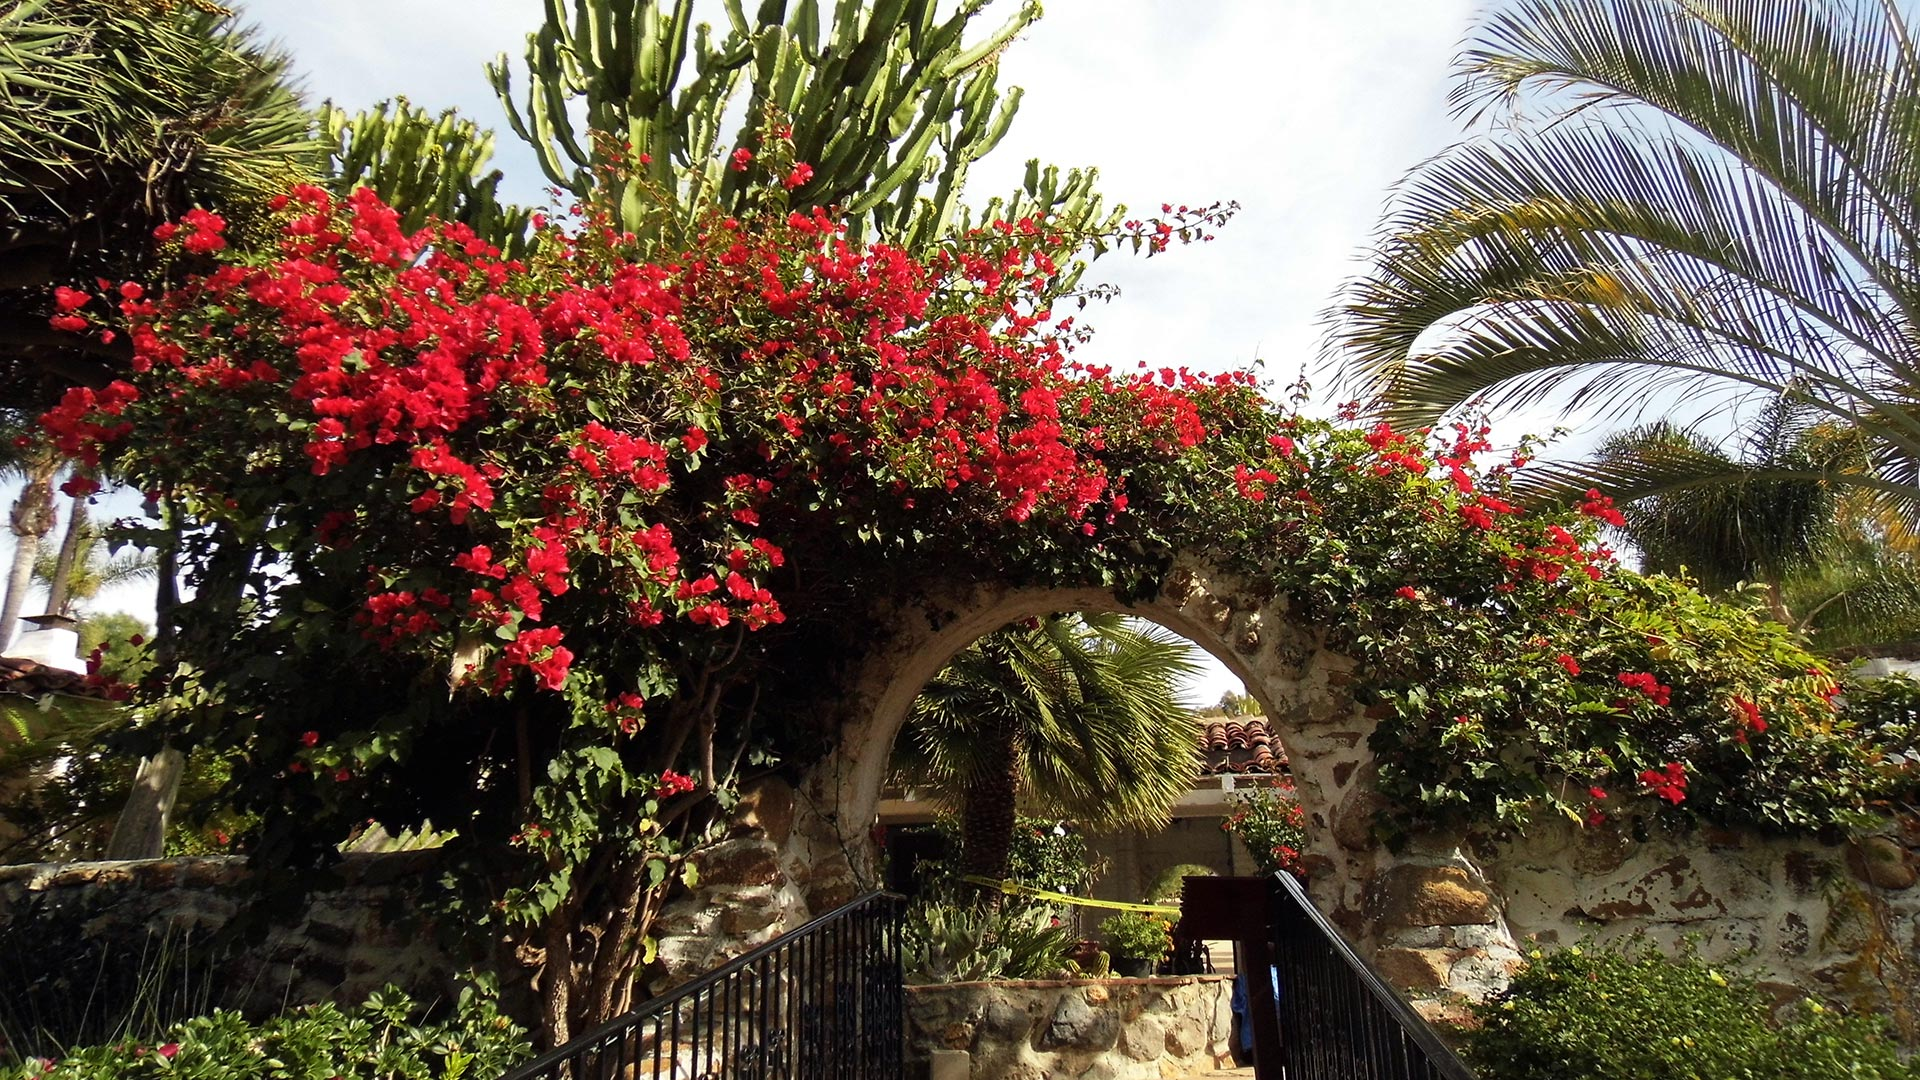 An archway with overgrown flowers at the Leo Carrillo Ranch Historic Park.